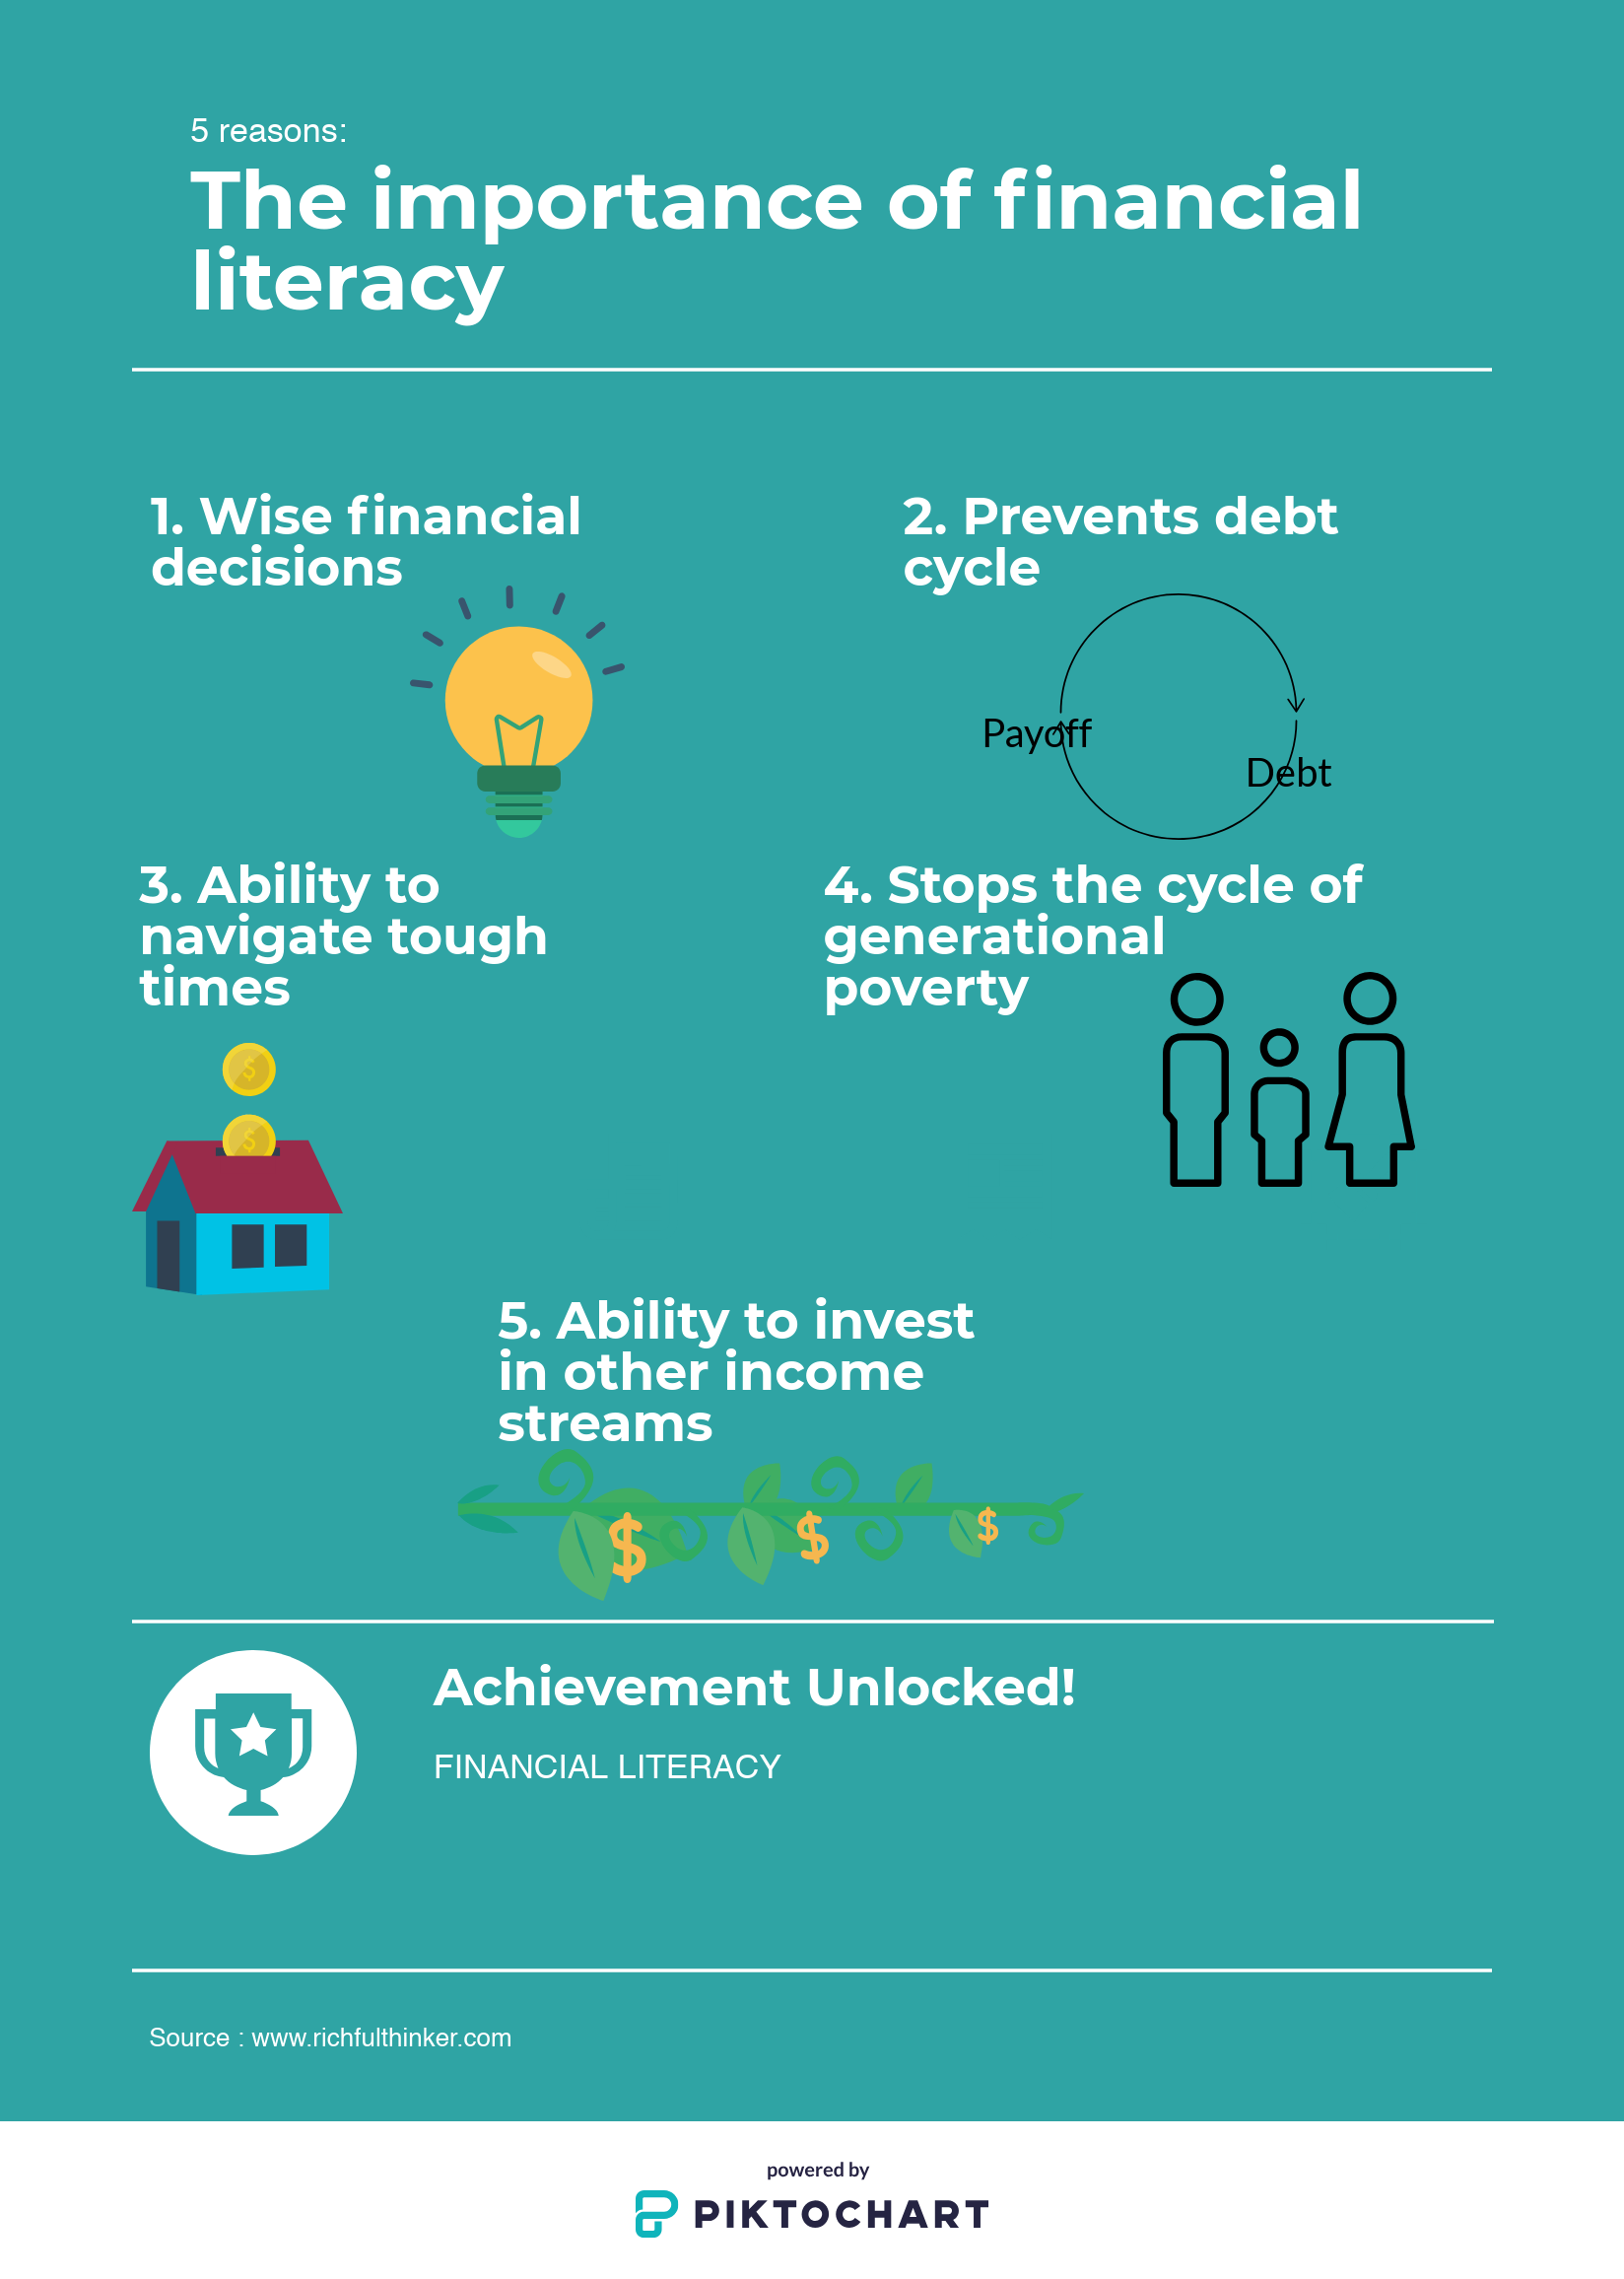 The importance of financial literacy - 5 reasons